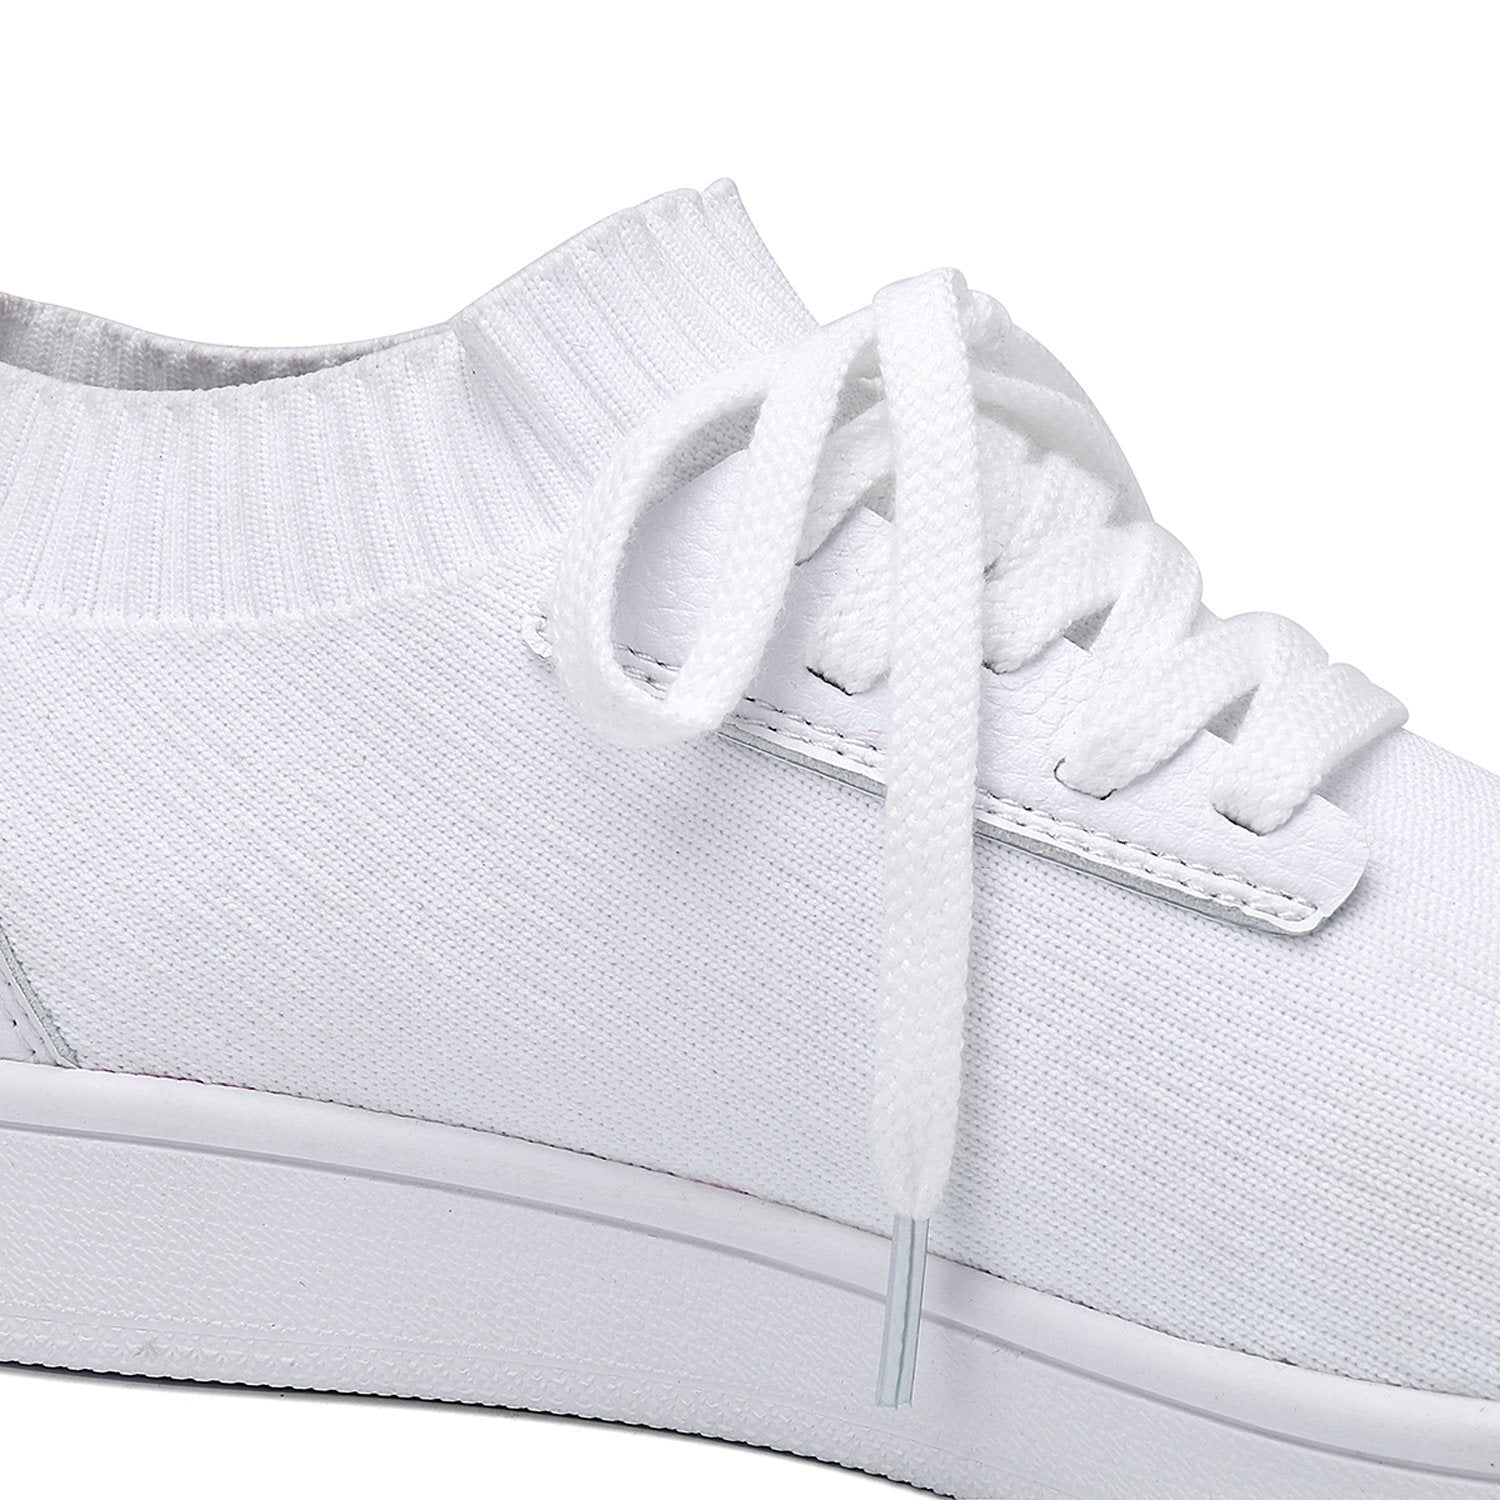 Freeknit Breathable Skate Shoes - Soulsfeng